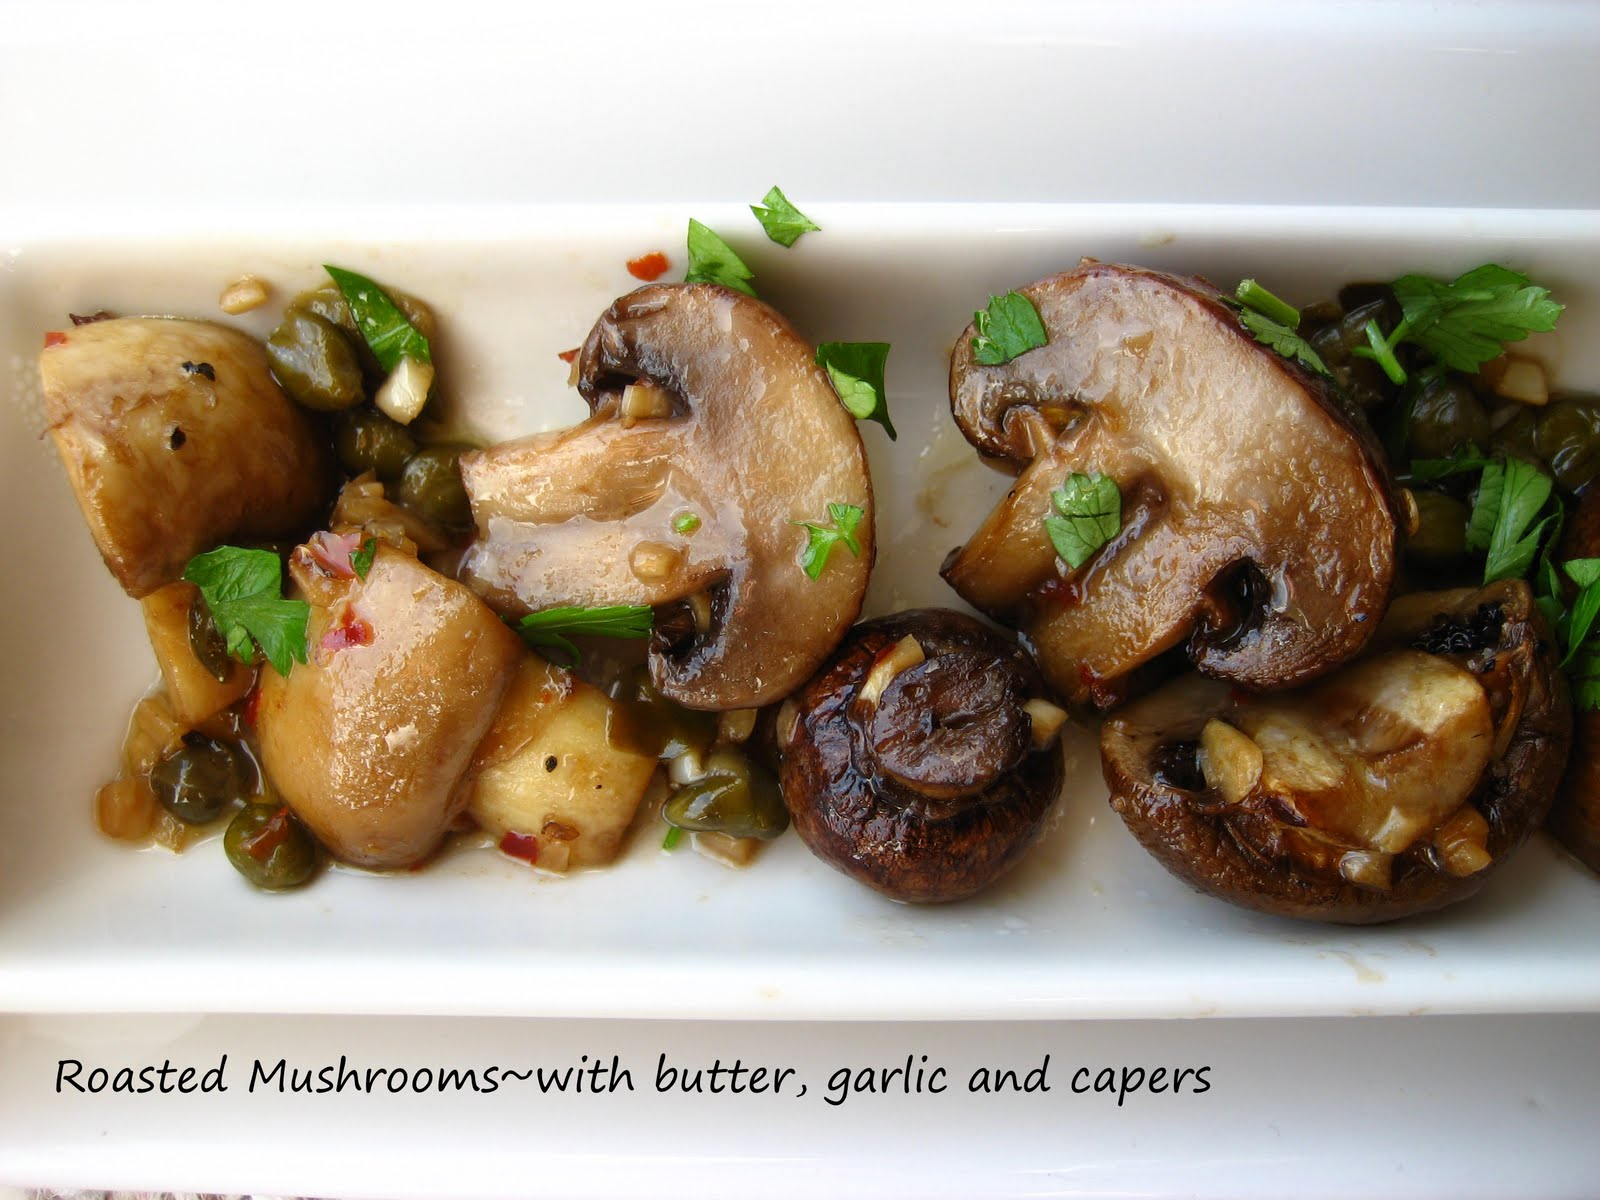 Home Cooking In Montana: Garlic and Butter Roasted Mushrooms with ...